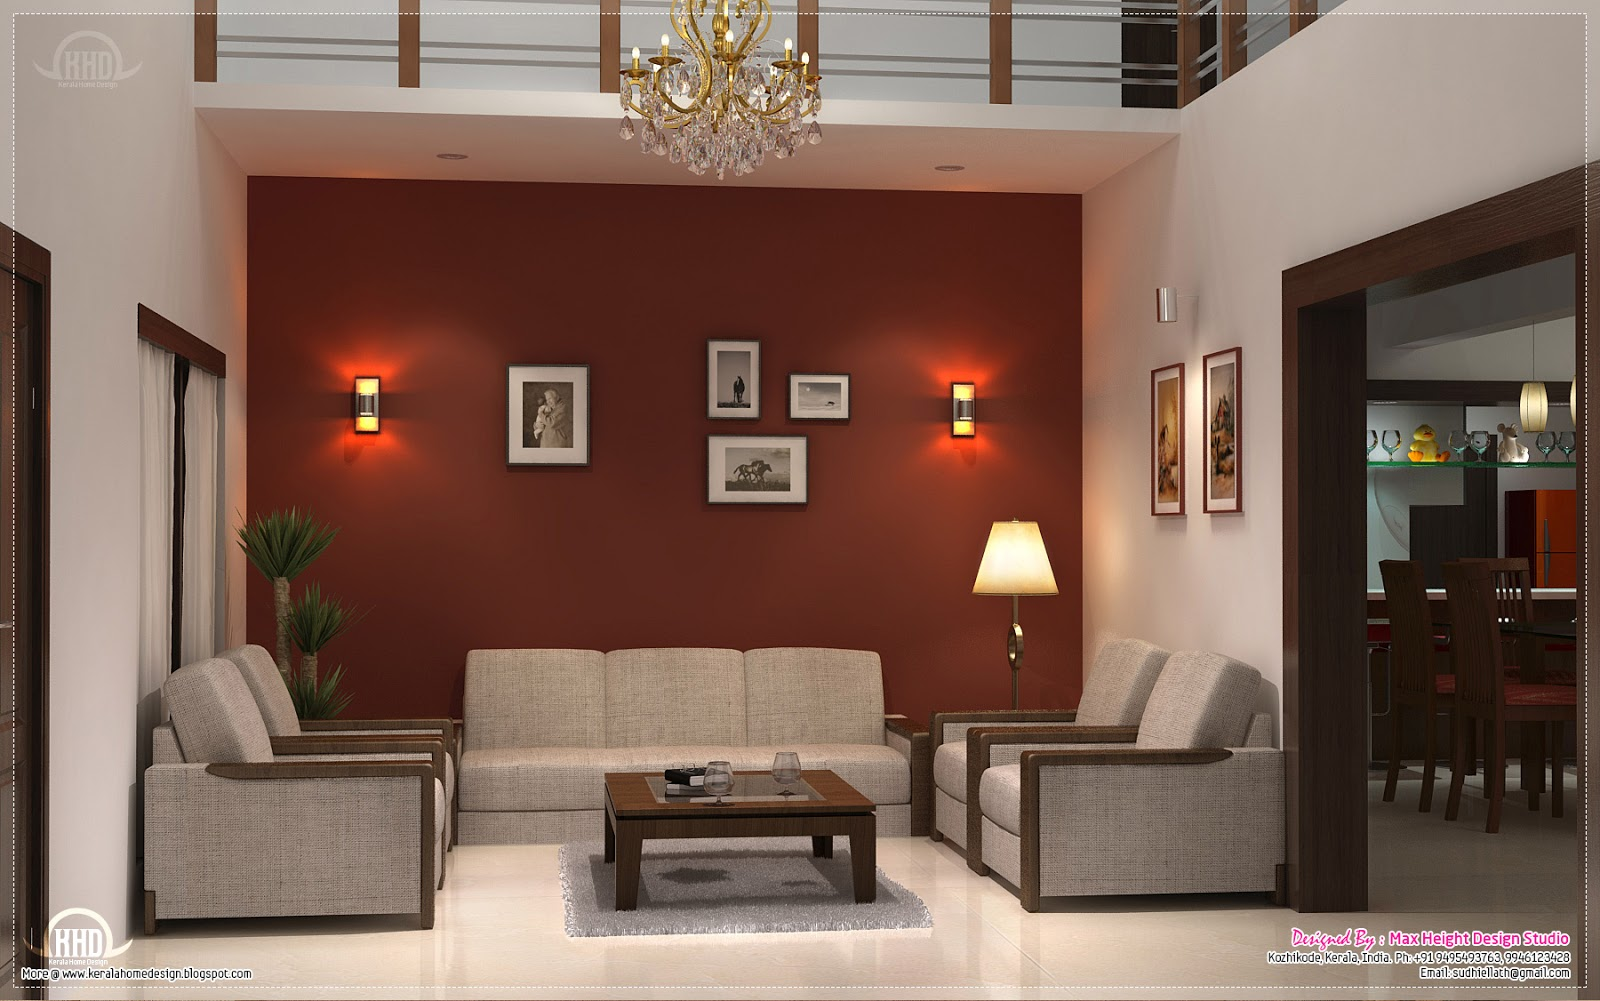 Home interior design ideas kerala home design and floor for Apartment design models